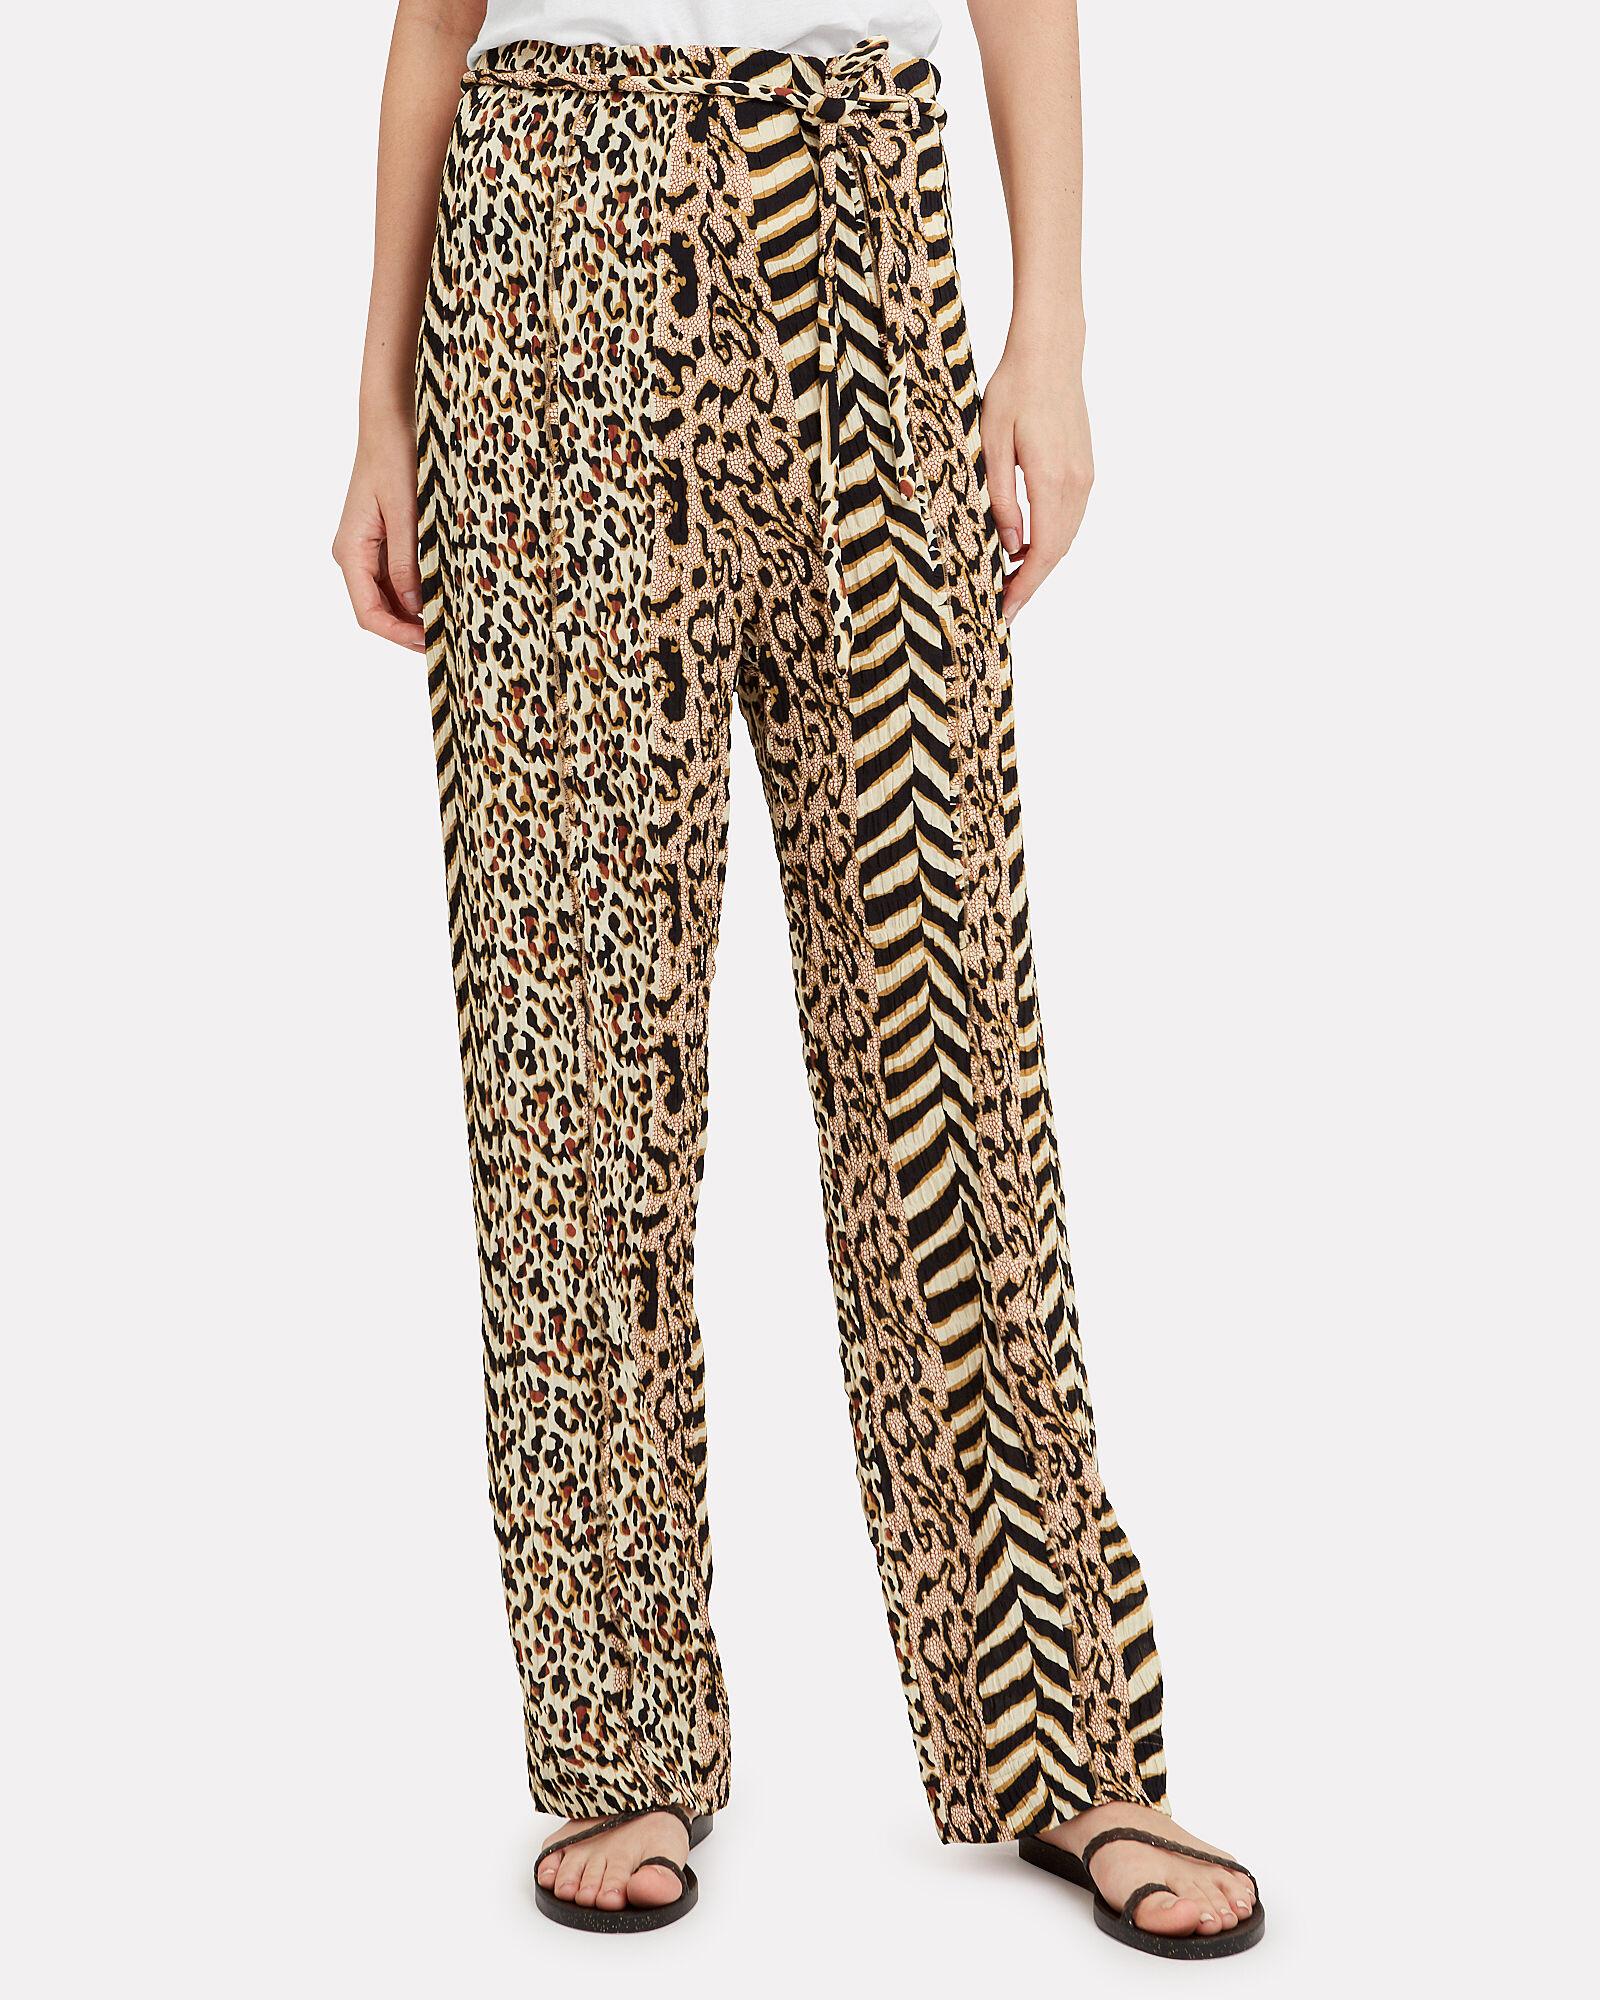 Luma '60's Animal Print Pants, MULTI, hi-res